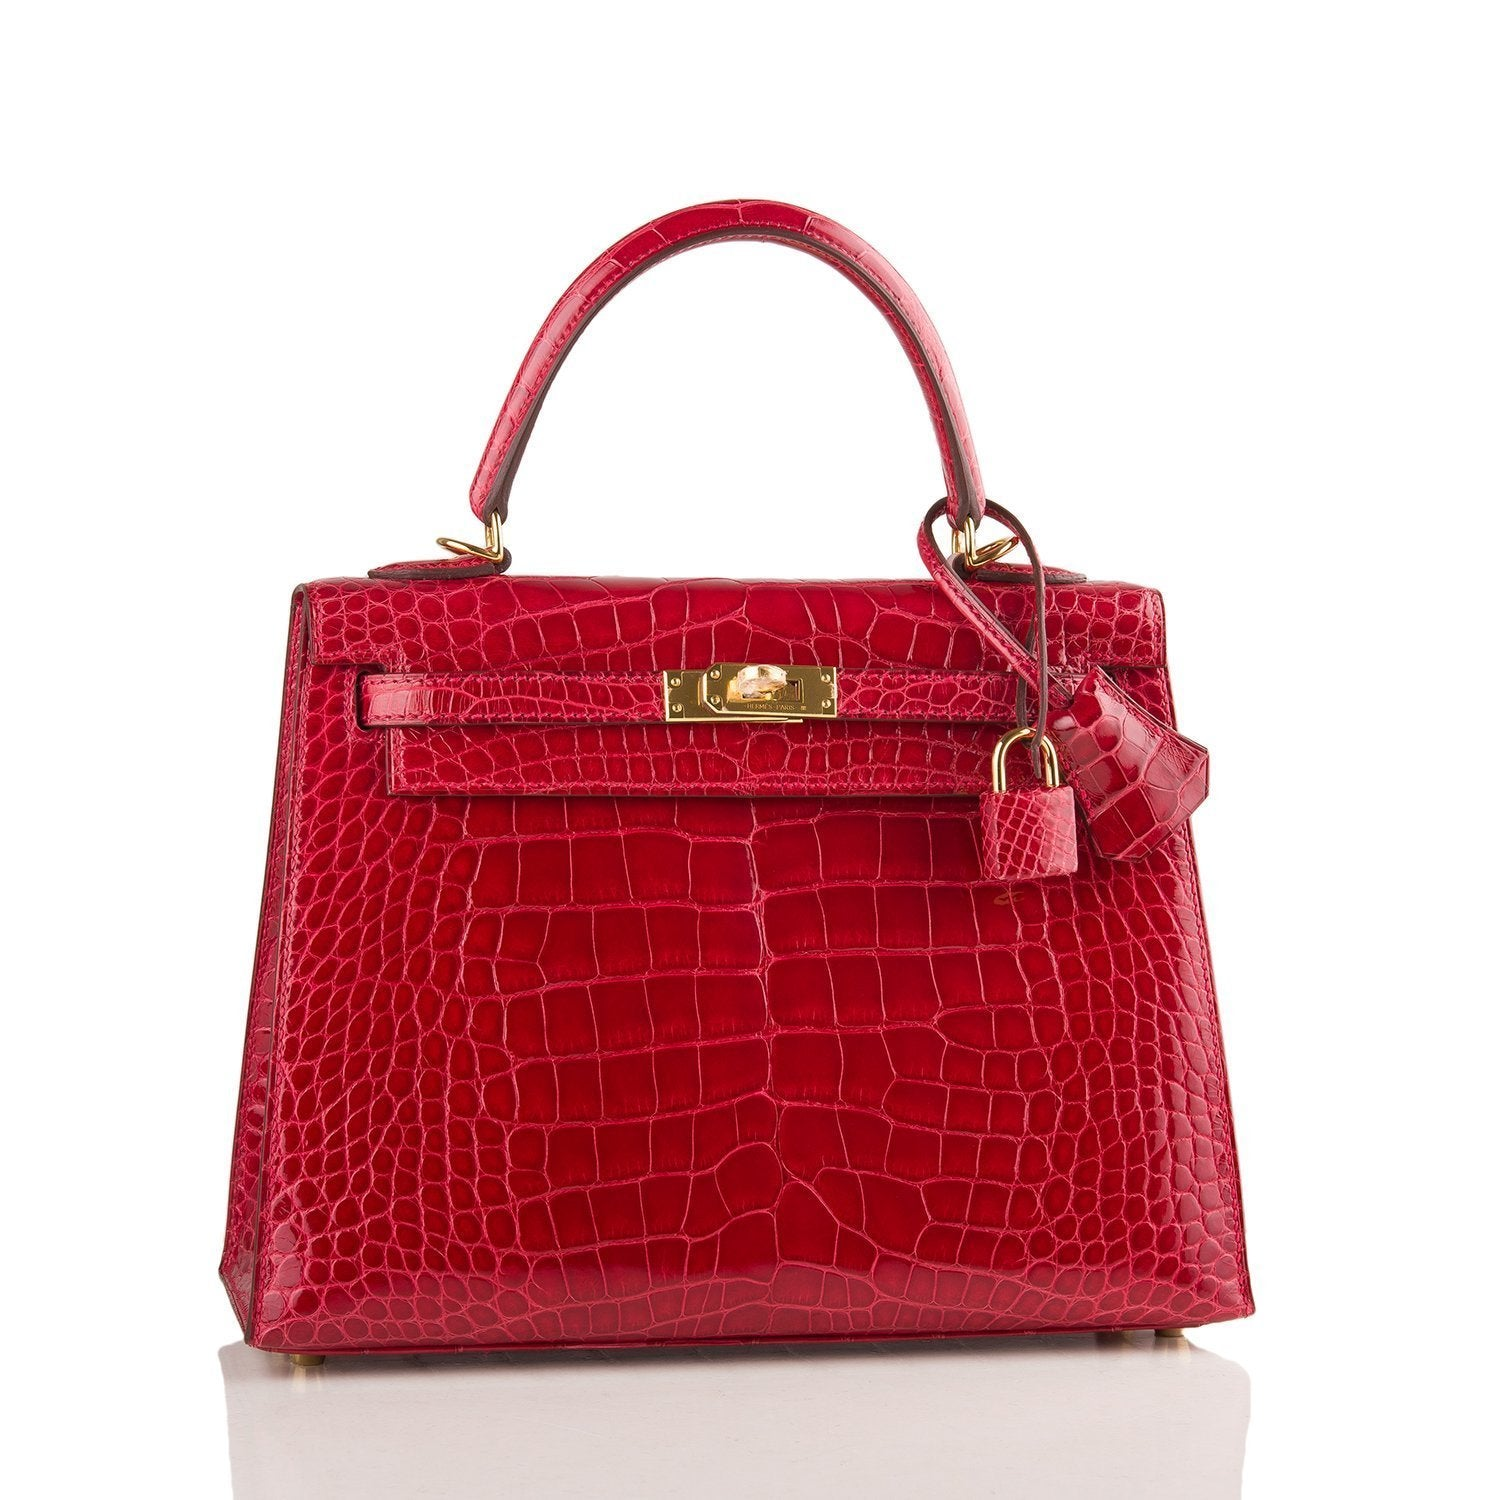 ... store hermes braise shiny alligator kelly 25cm gold hardware e8041  6718b ... 2e01be0c0d2